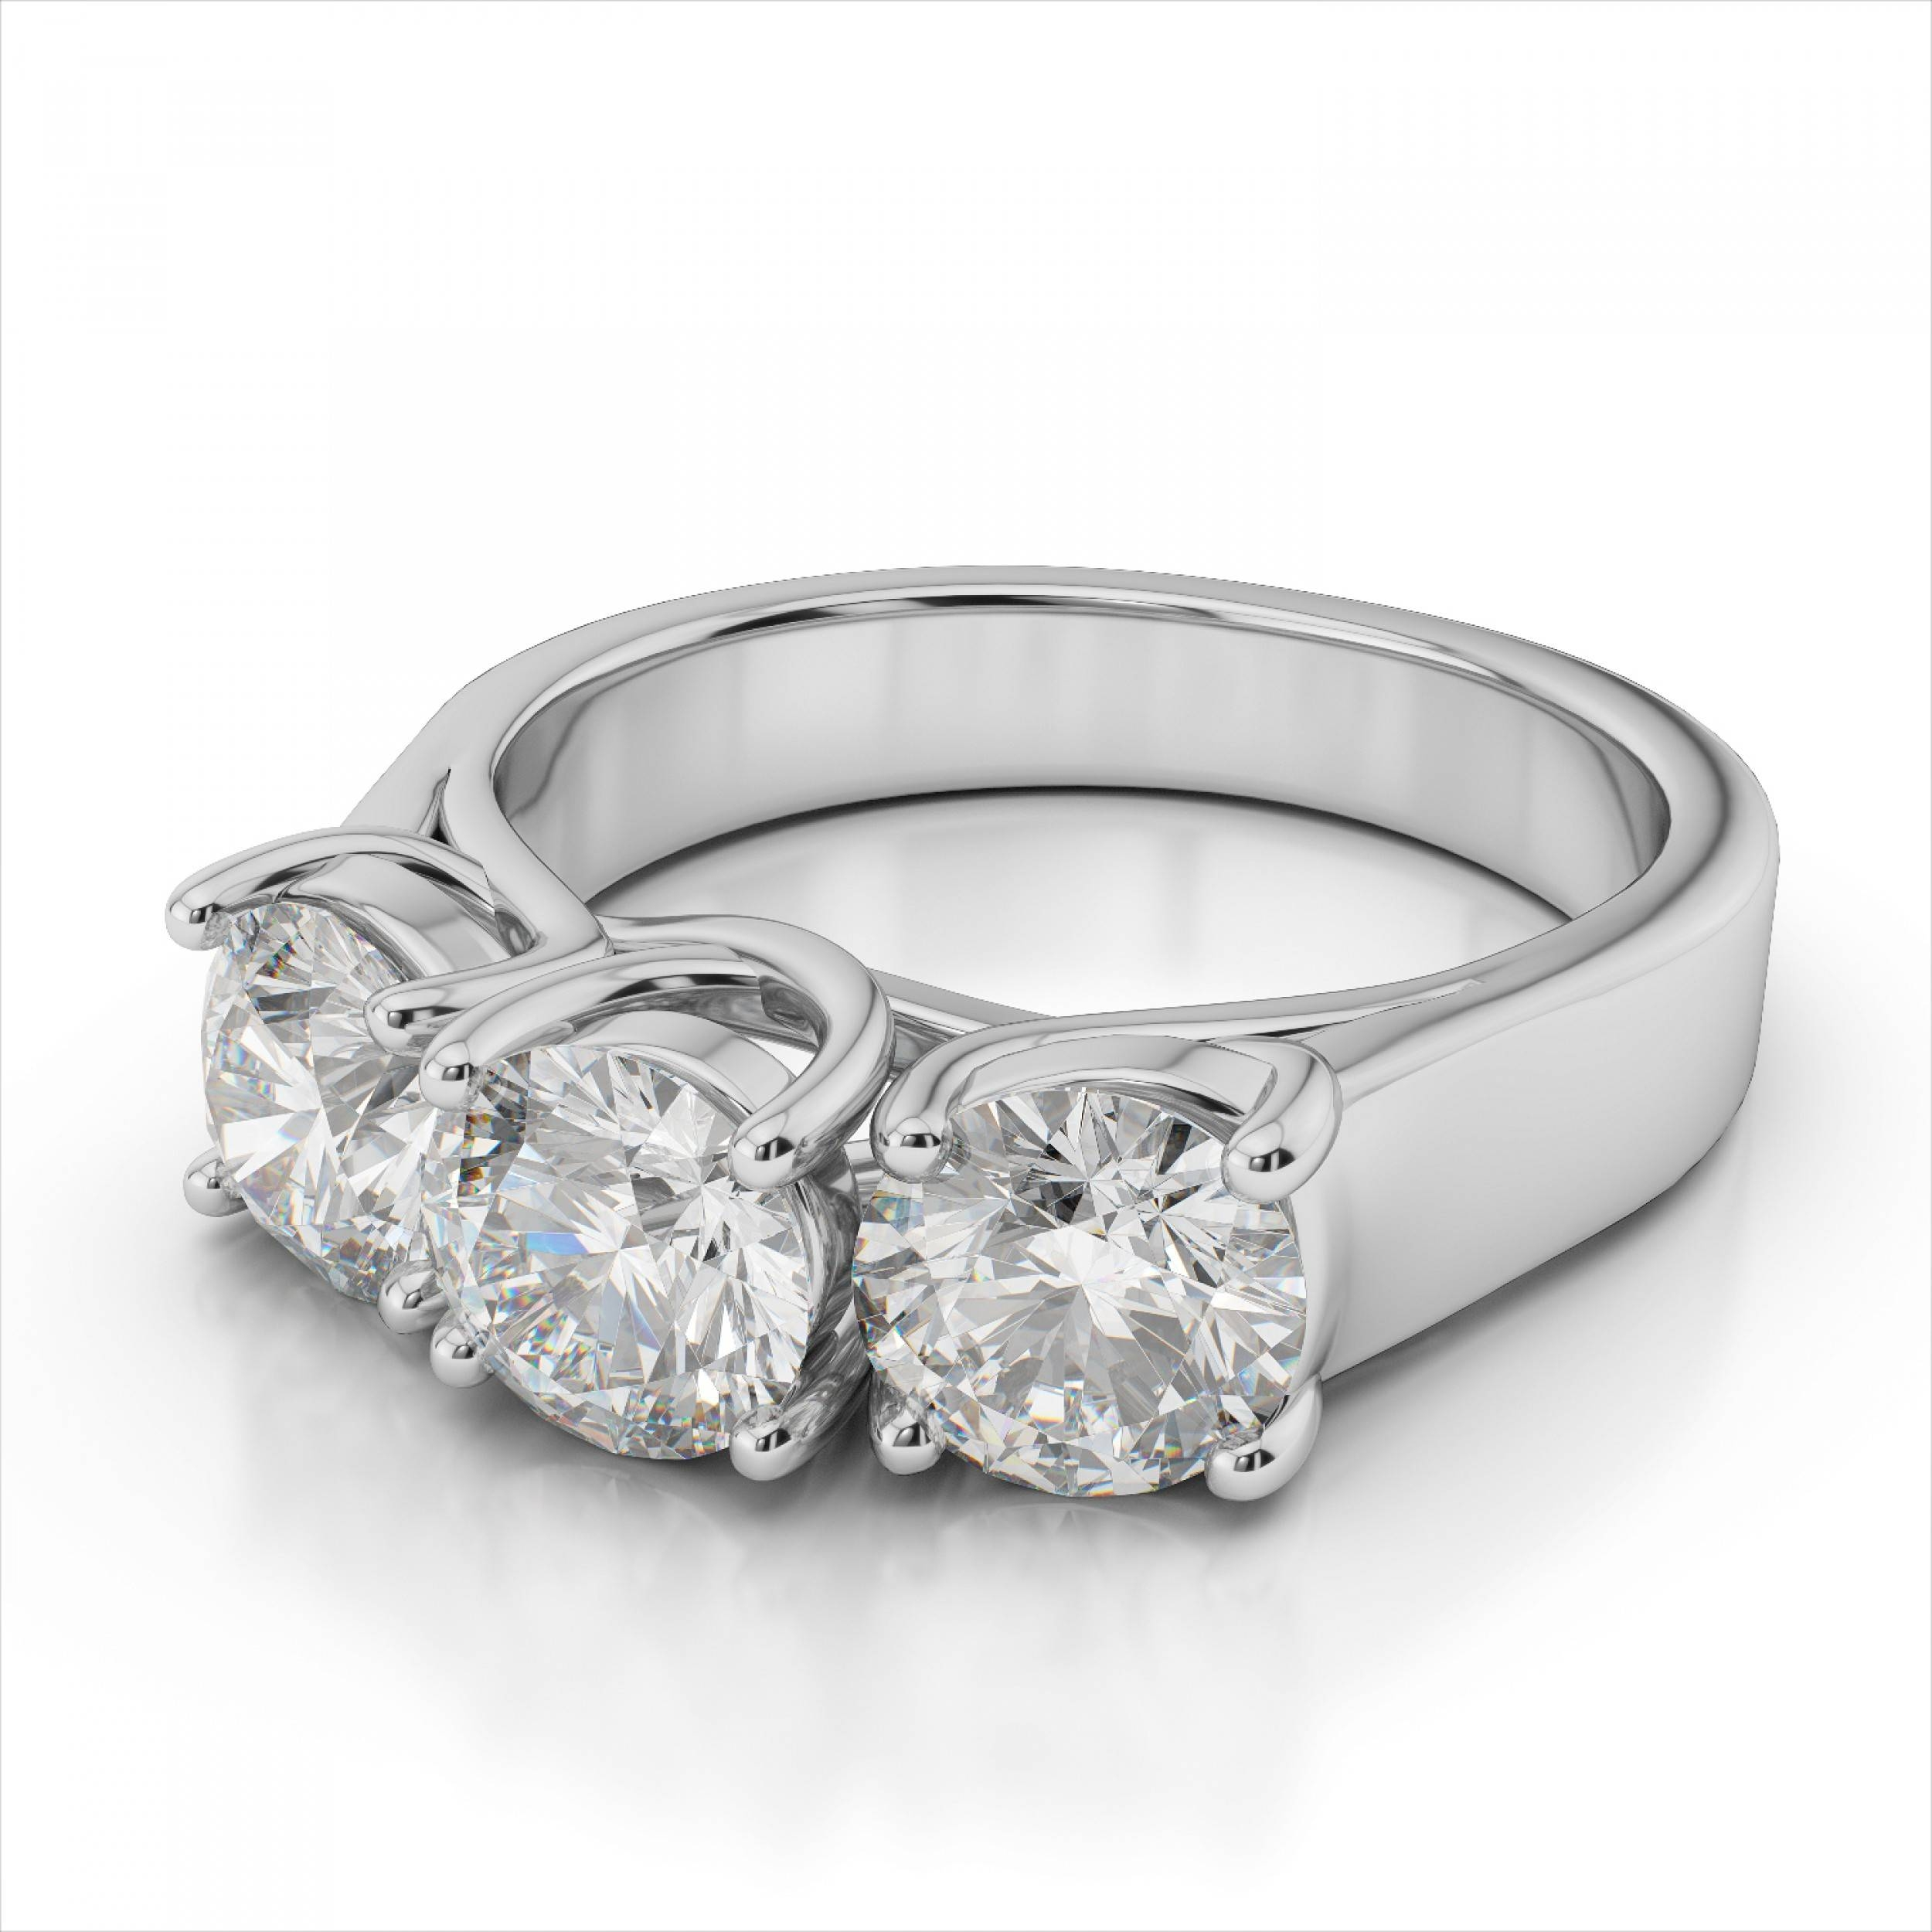 Certified 3 Stone Diamond Rings | Wedding, Promise, Diamond For Most Current 3 Carat Anniversary Rings (View 10 of 25)